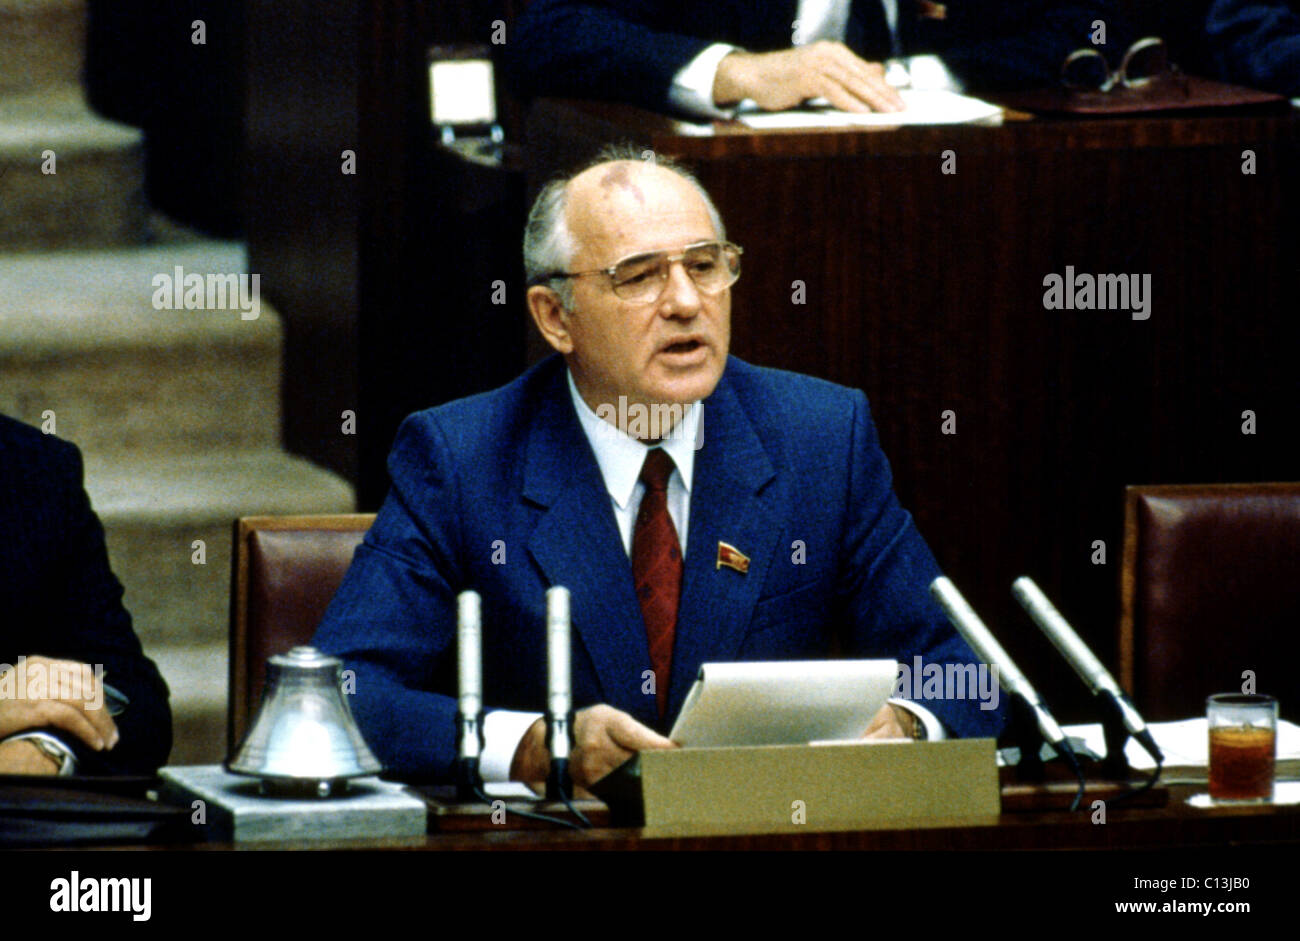 MIKHAIL GORBACHEV during his presidency of the USSR Stock Photo